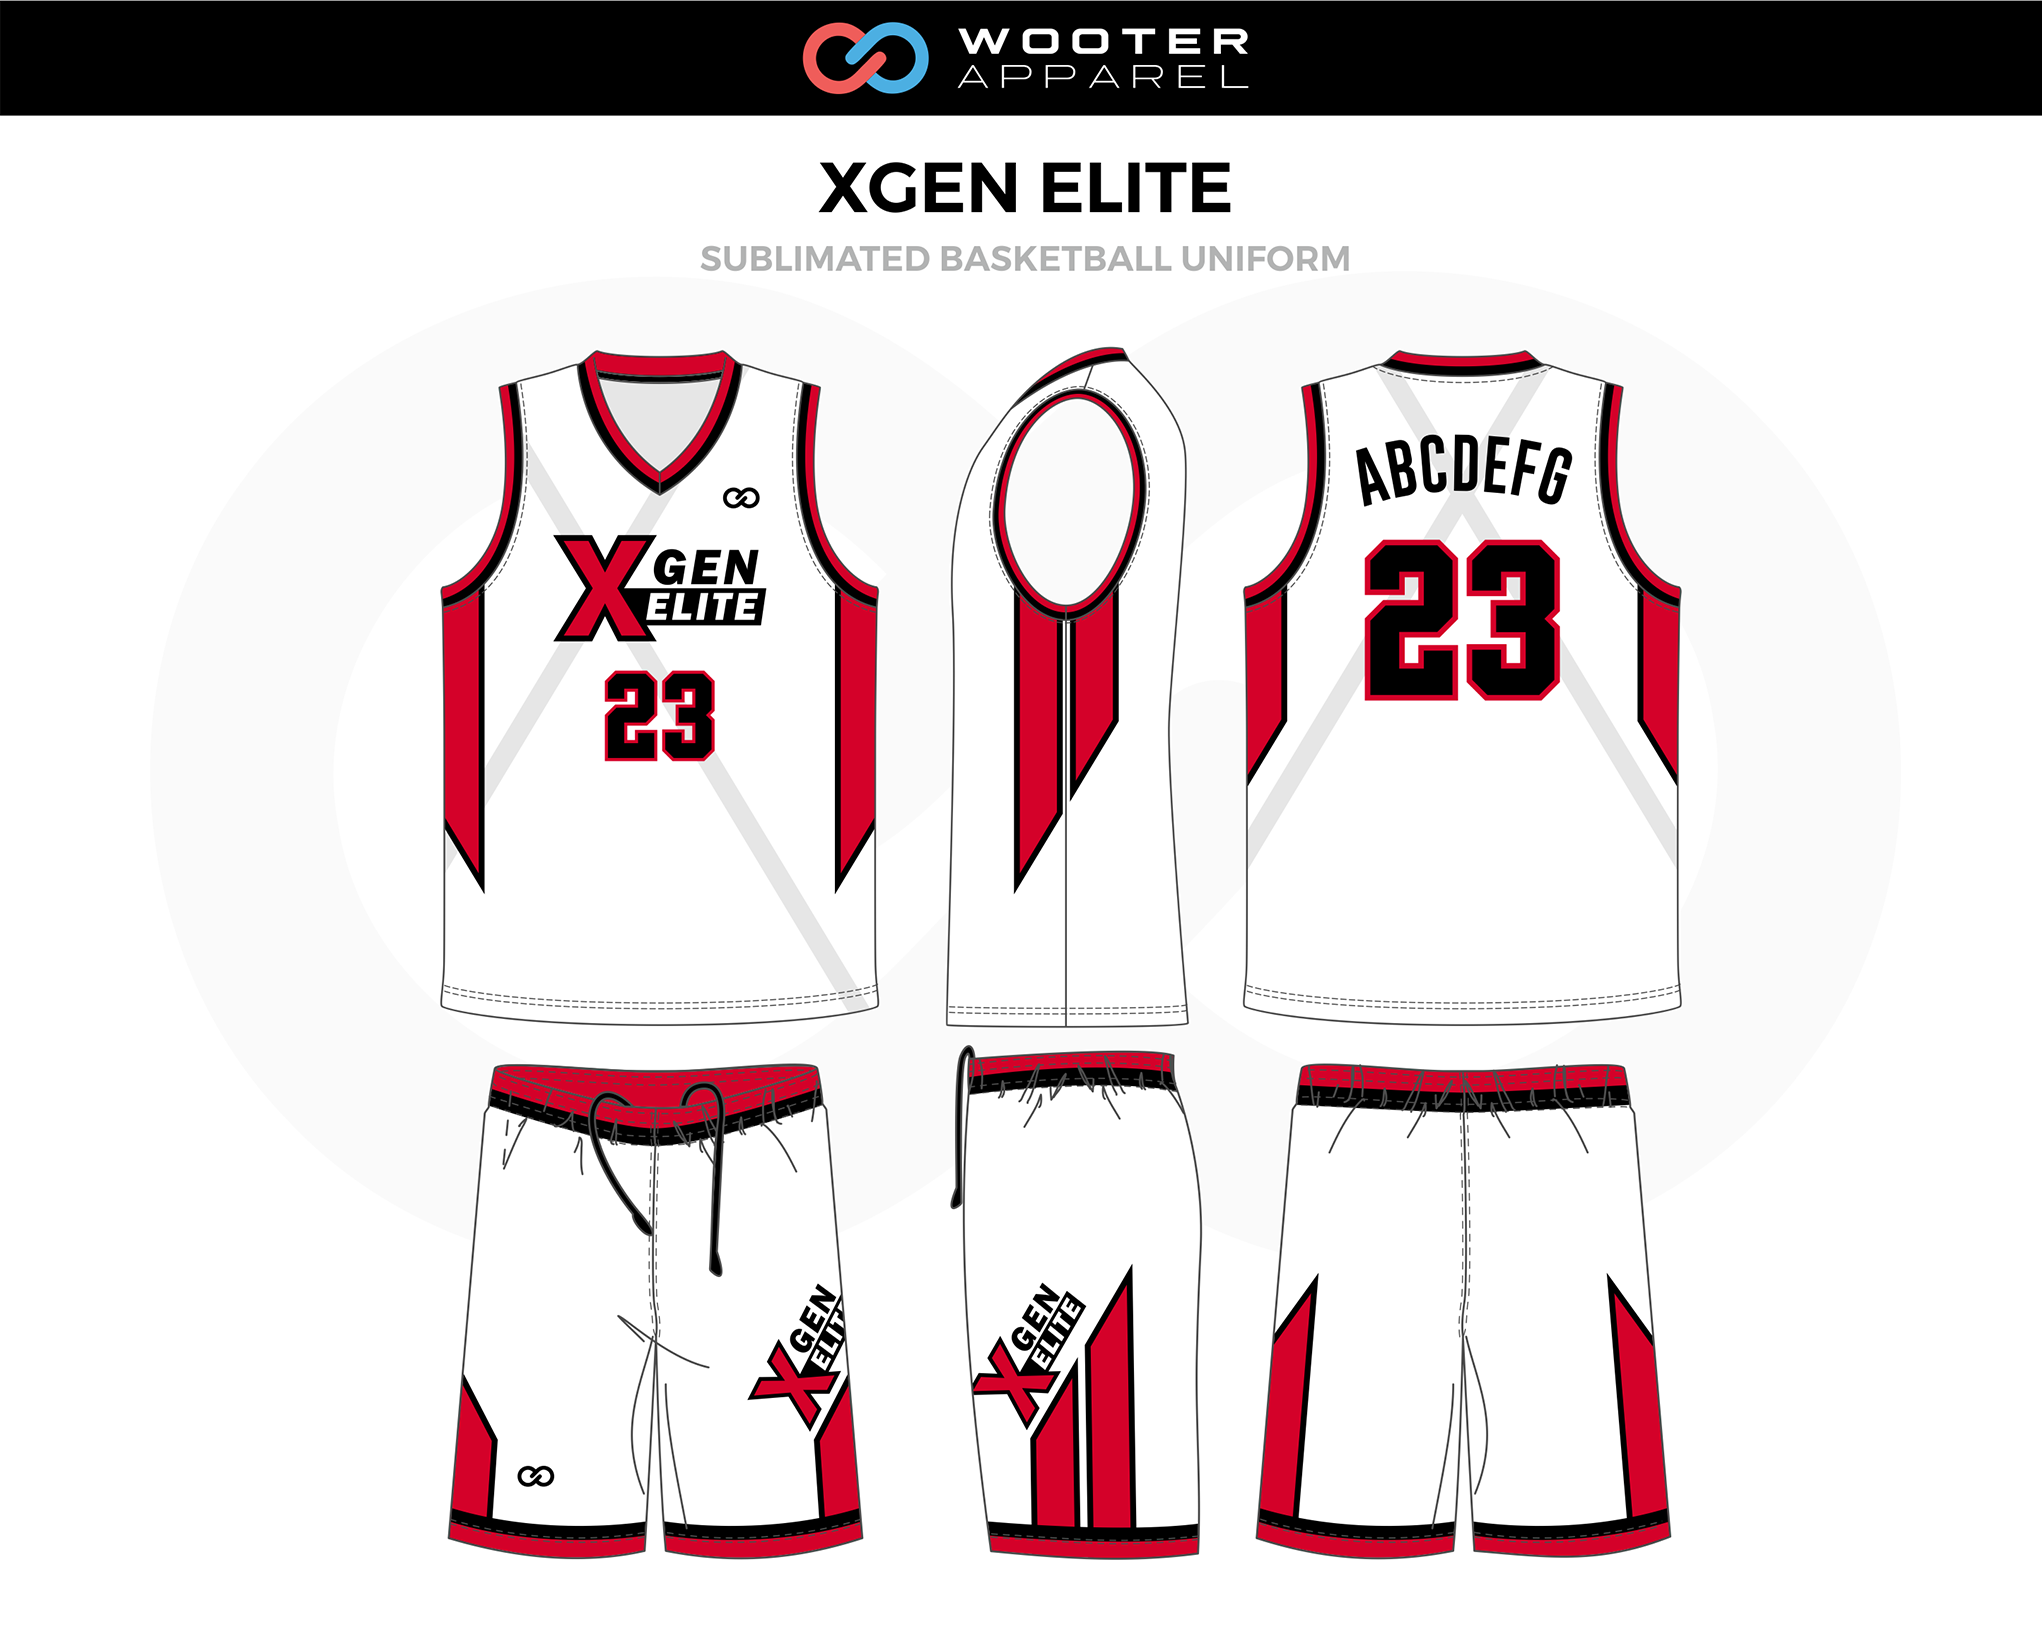 XGEN ELITE Red Black White Basketball Uniform, Jersey and Shorts